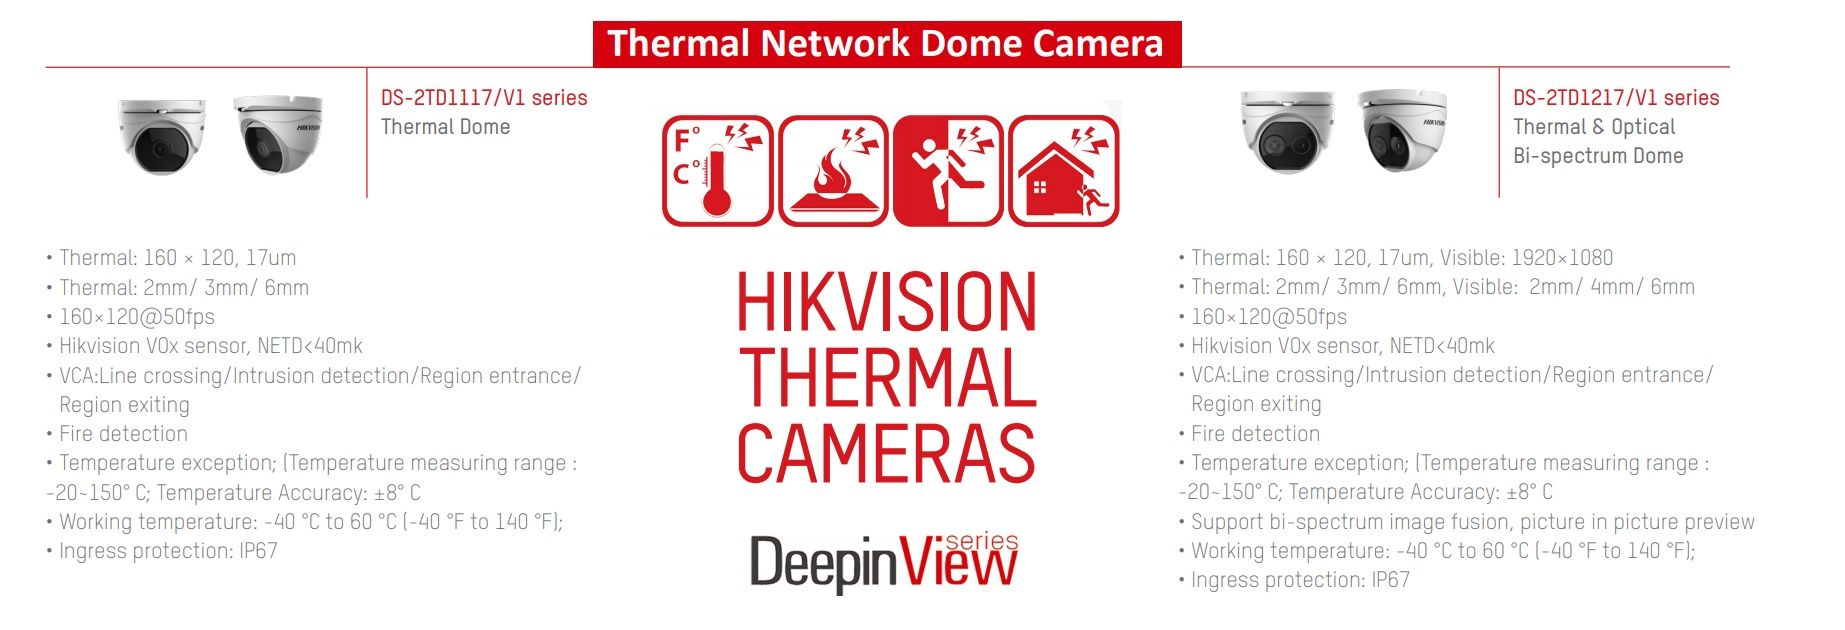 HIKVISION THERMAL DOME CAMERA